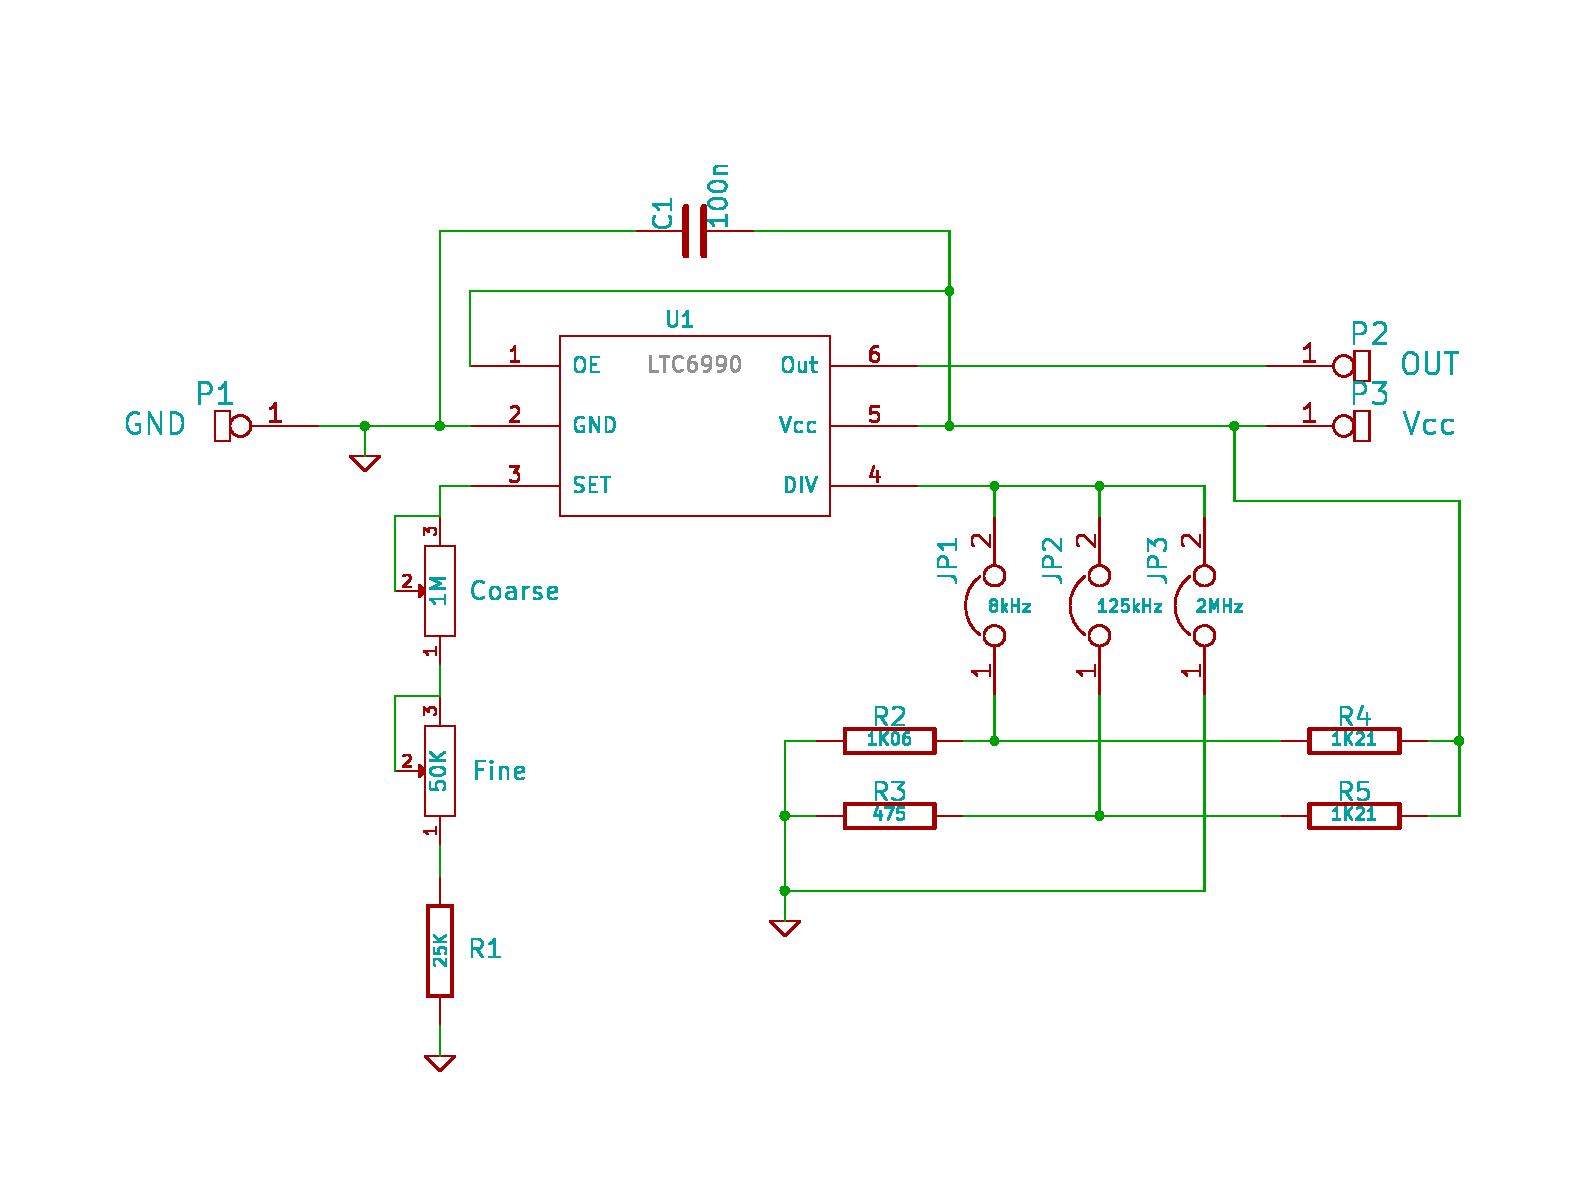 I Need A Multiple Switch Light Switch Which Cant All Be Turned Off At Once moreover The Stratocaster 5 Way Switch besides Wiring Diagram 3 Way Switch Diagrams together with Pids Piping Instrumentation Diagrams And Pid Valve Symbol Library furthermore Knx Lighting Wiring Diagram. on three way switch schematic